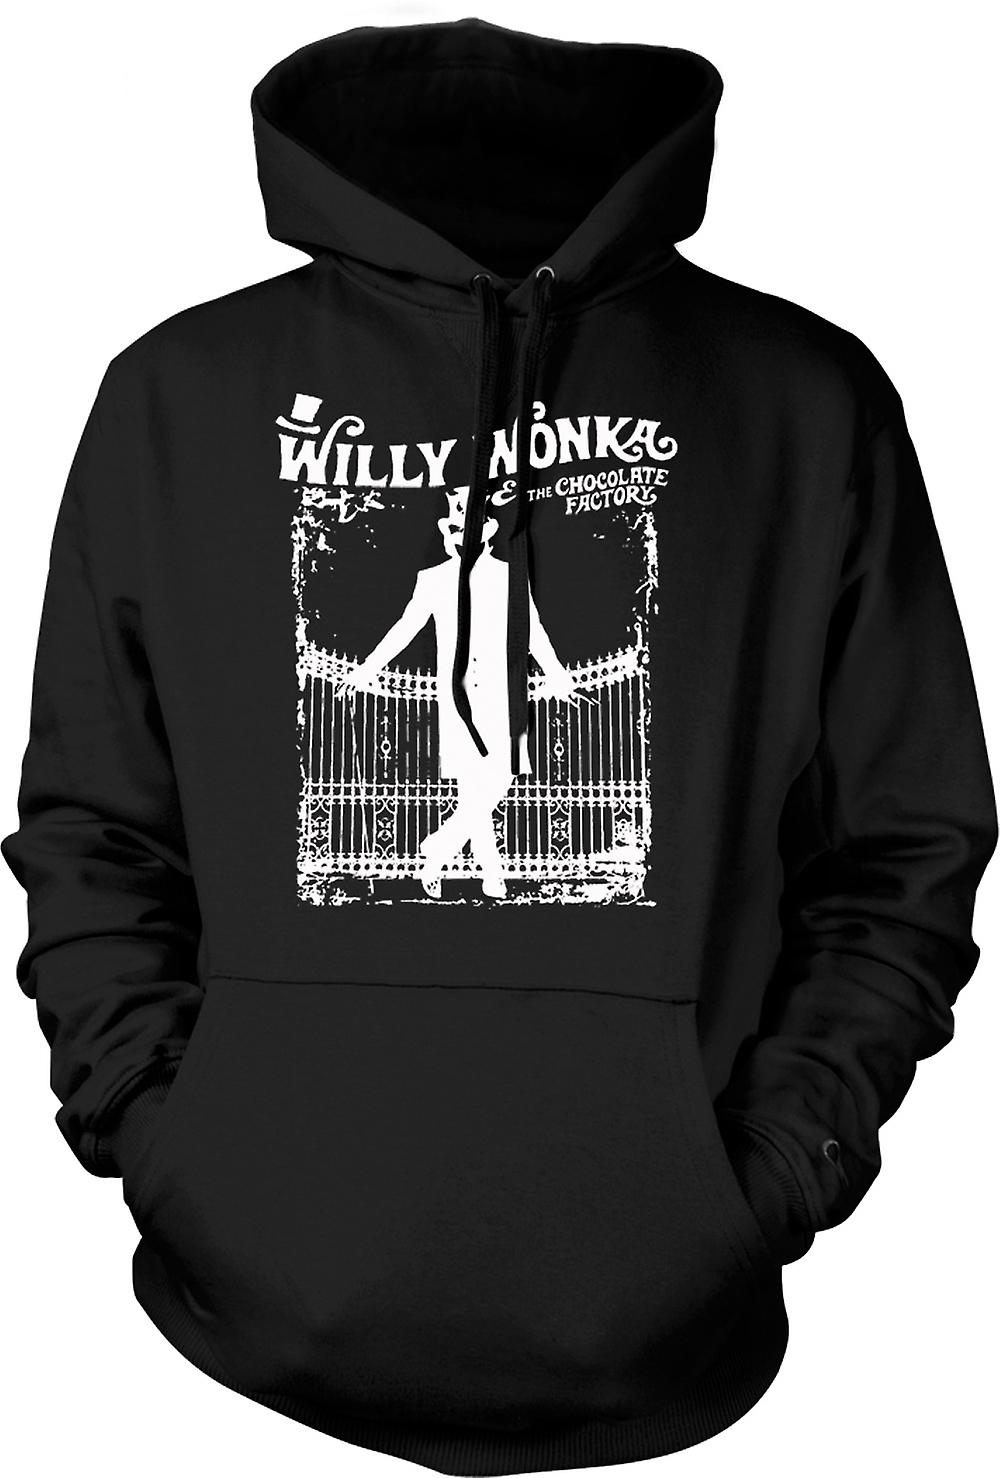 Enfant Sweat Capuche - Willy Wonka Et Chocolate Factory - BW